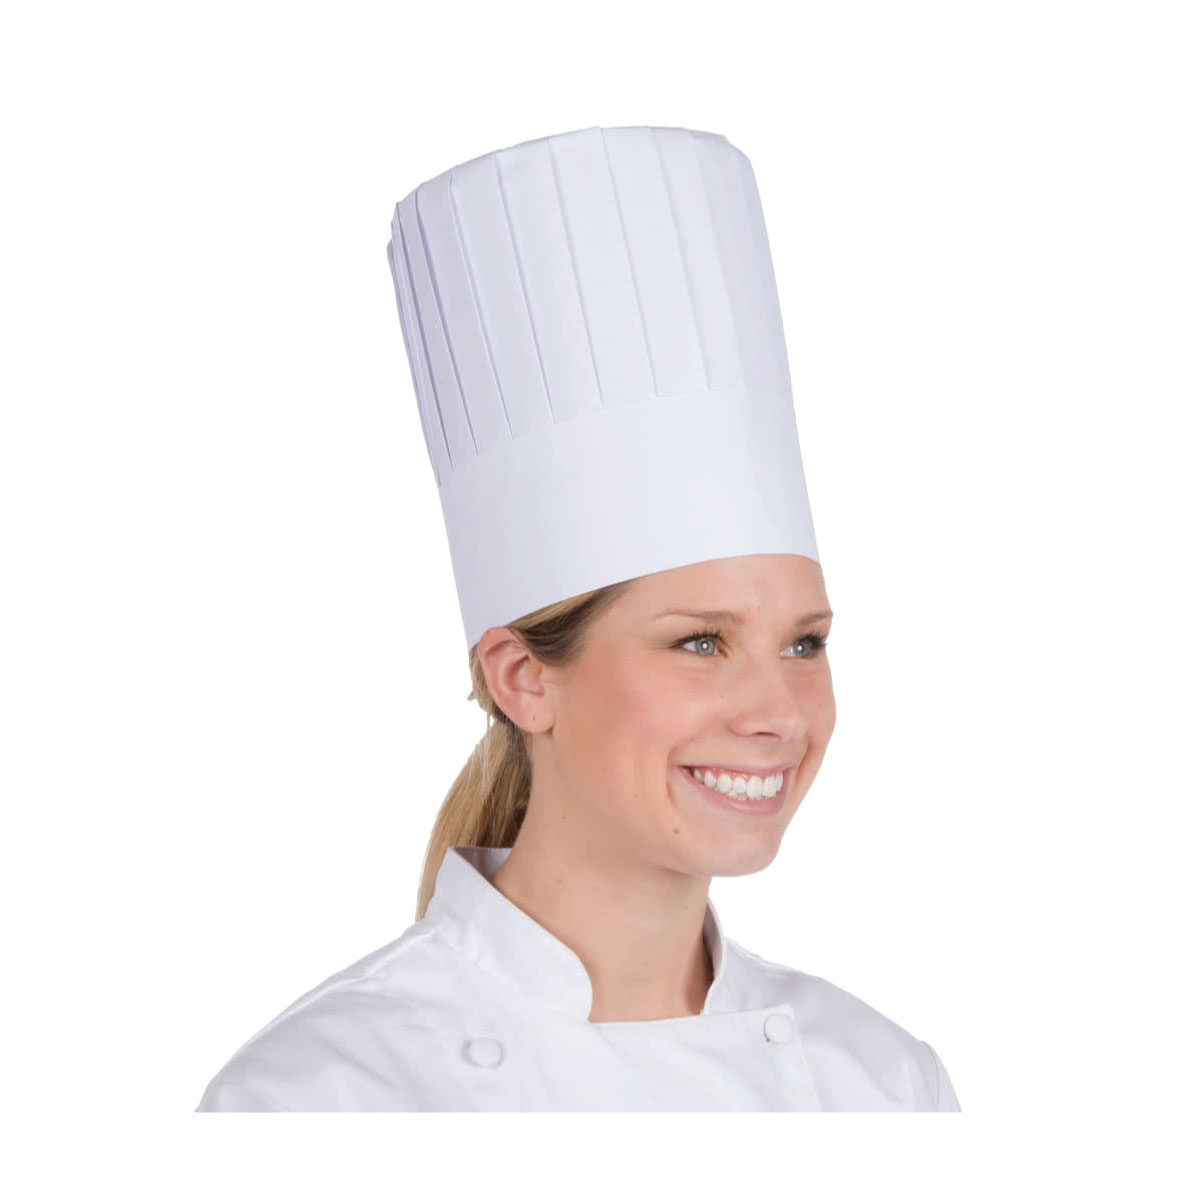 Lot Of 500pcs paper Disposable Chef Cooking Hats Free Shipping